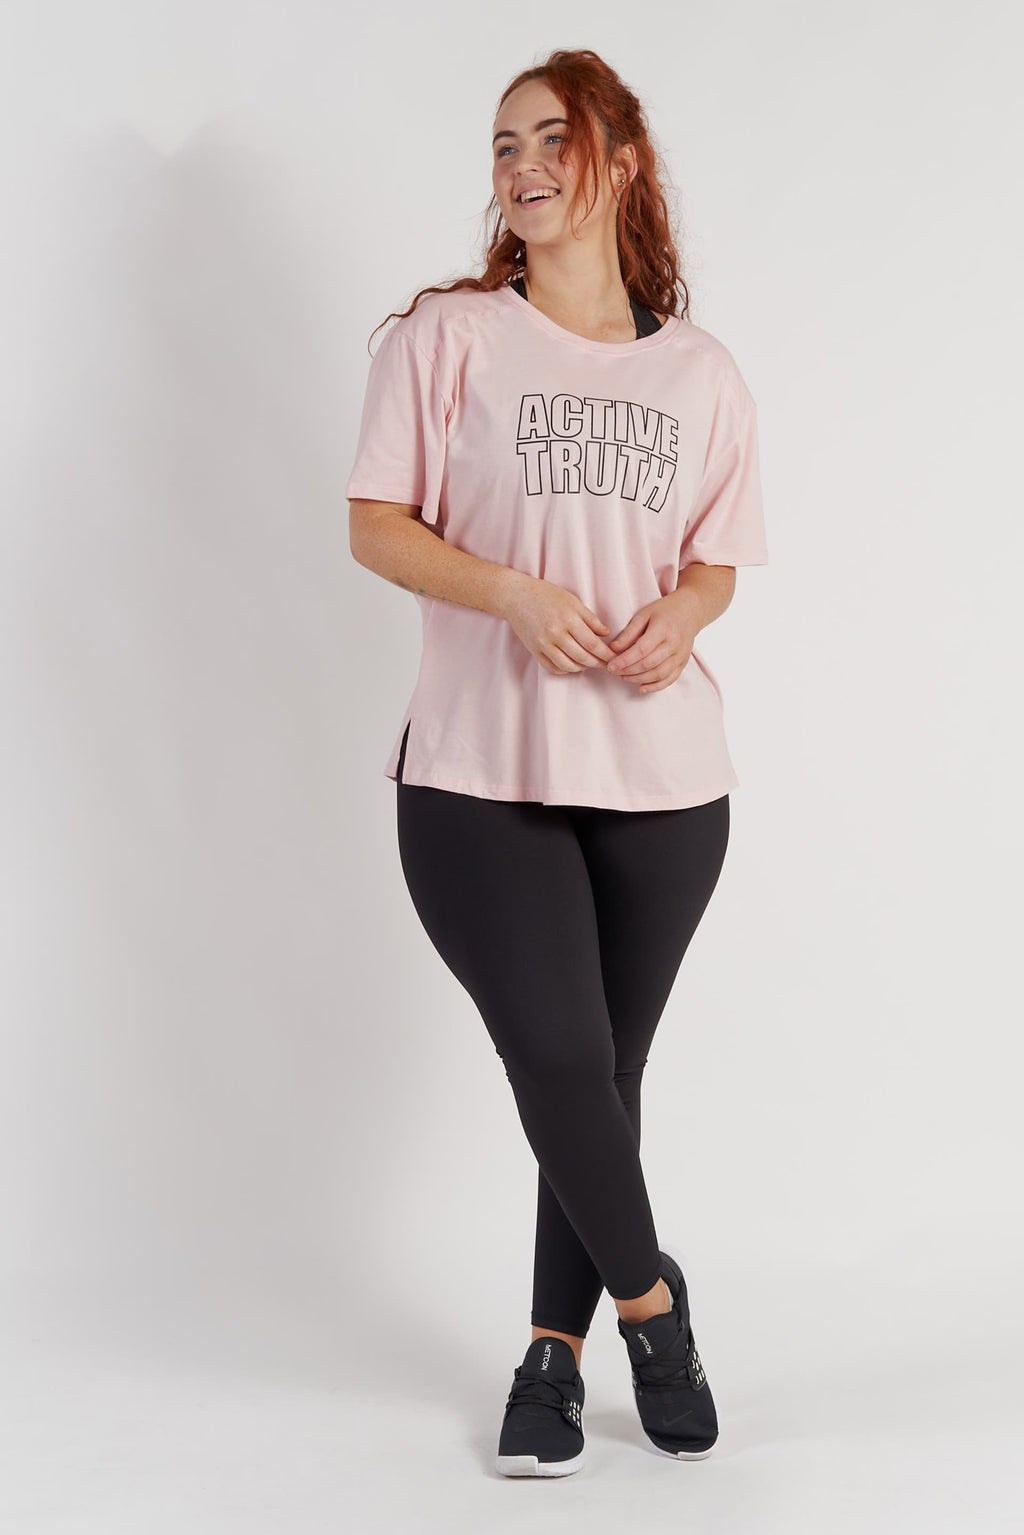 Crew Neck Logo T-Shirt - Blush from Active Truth USA